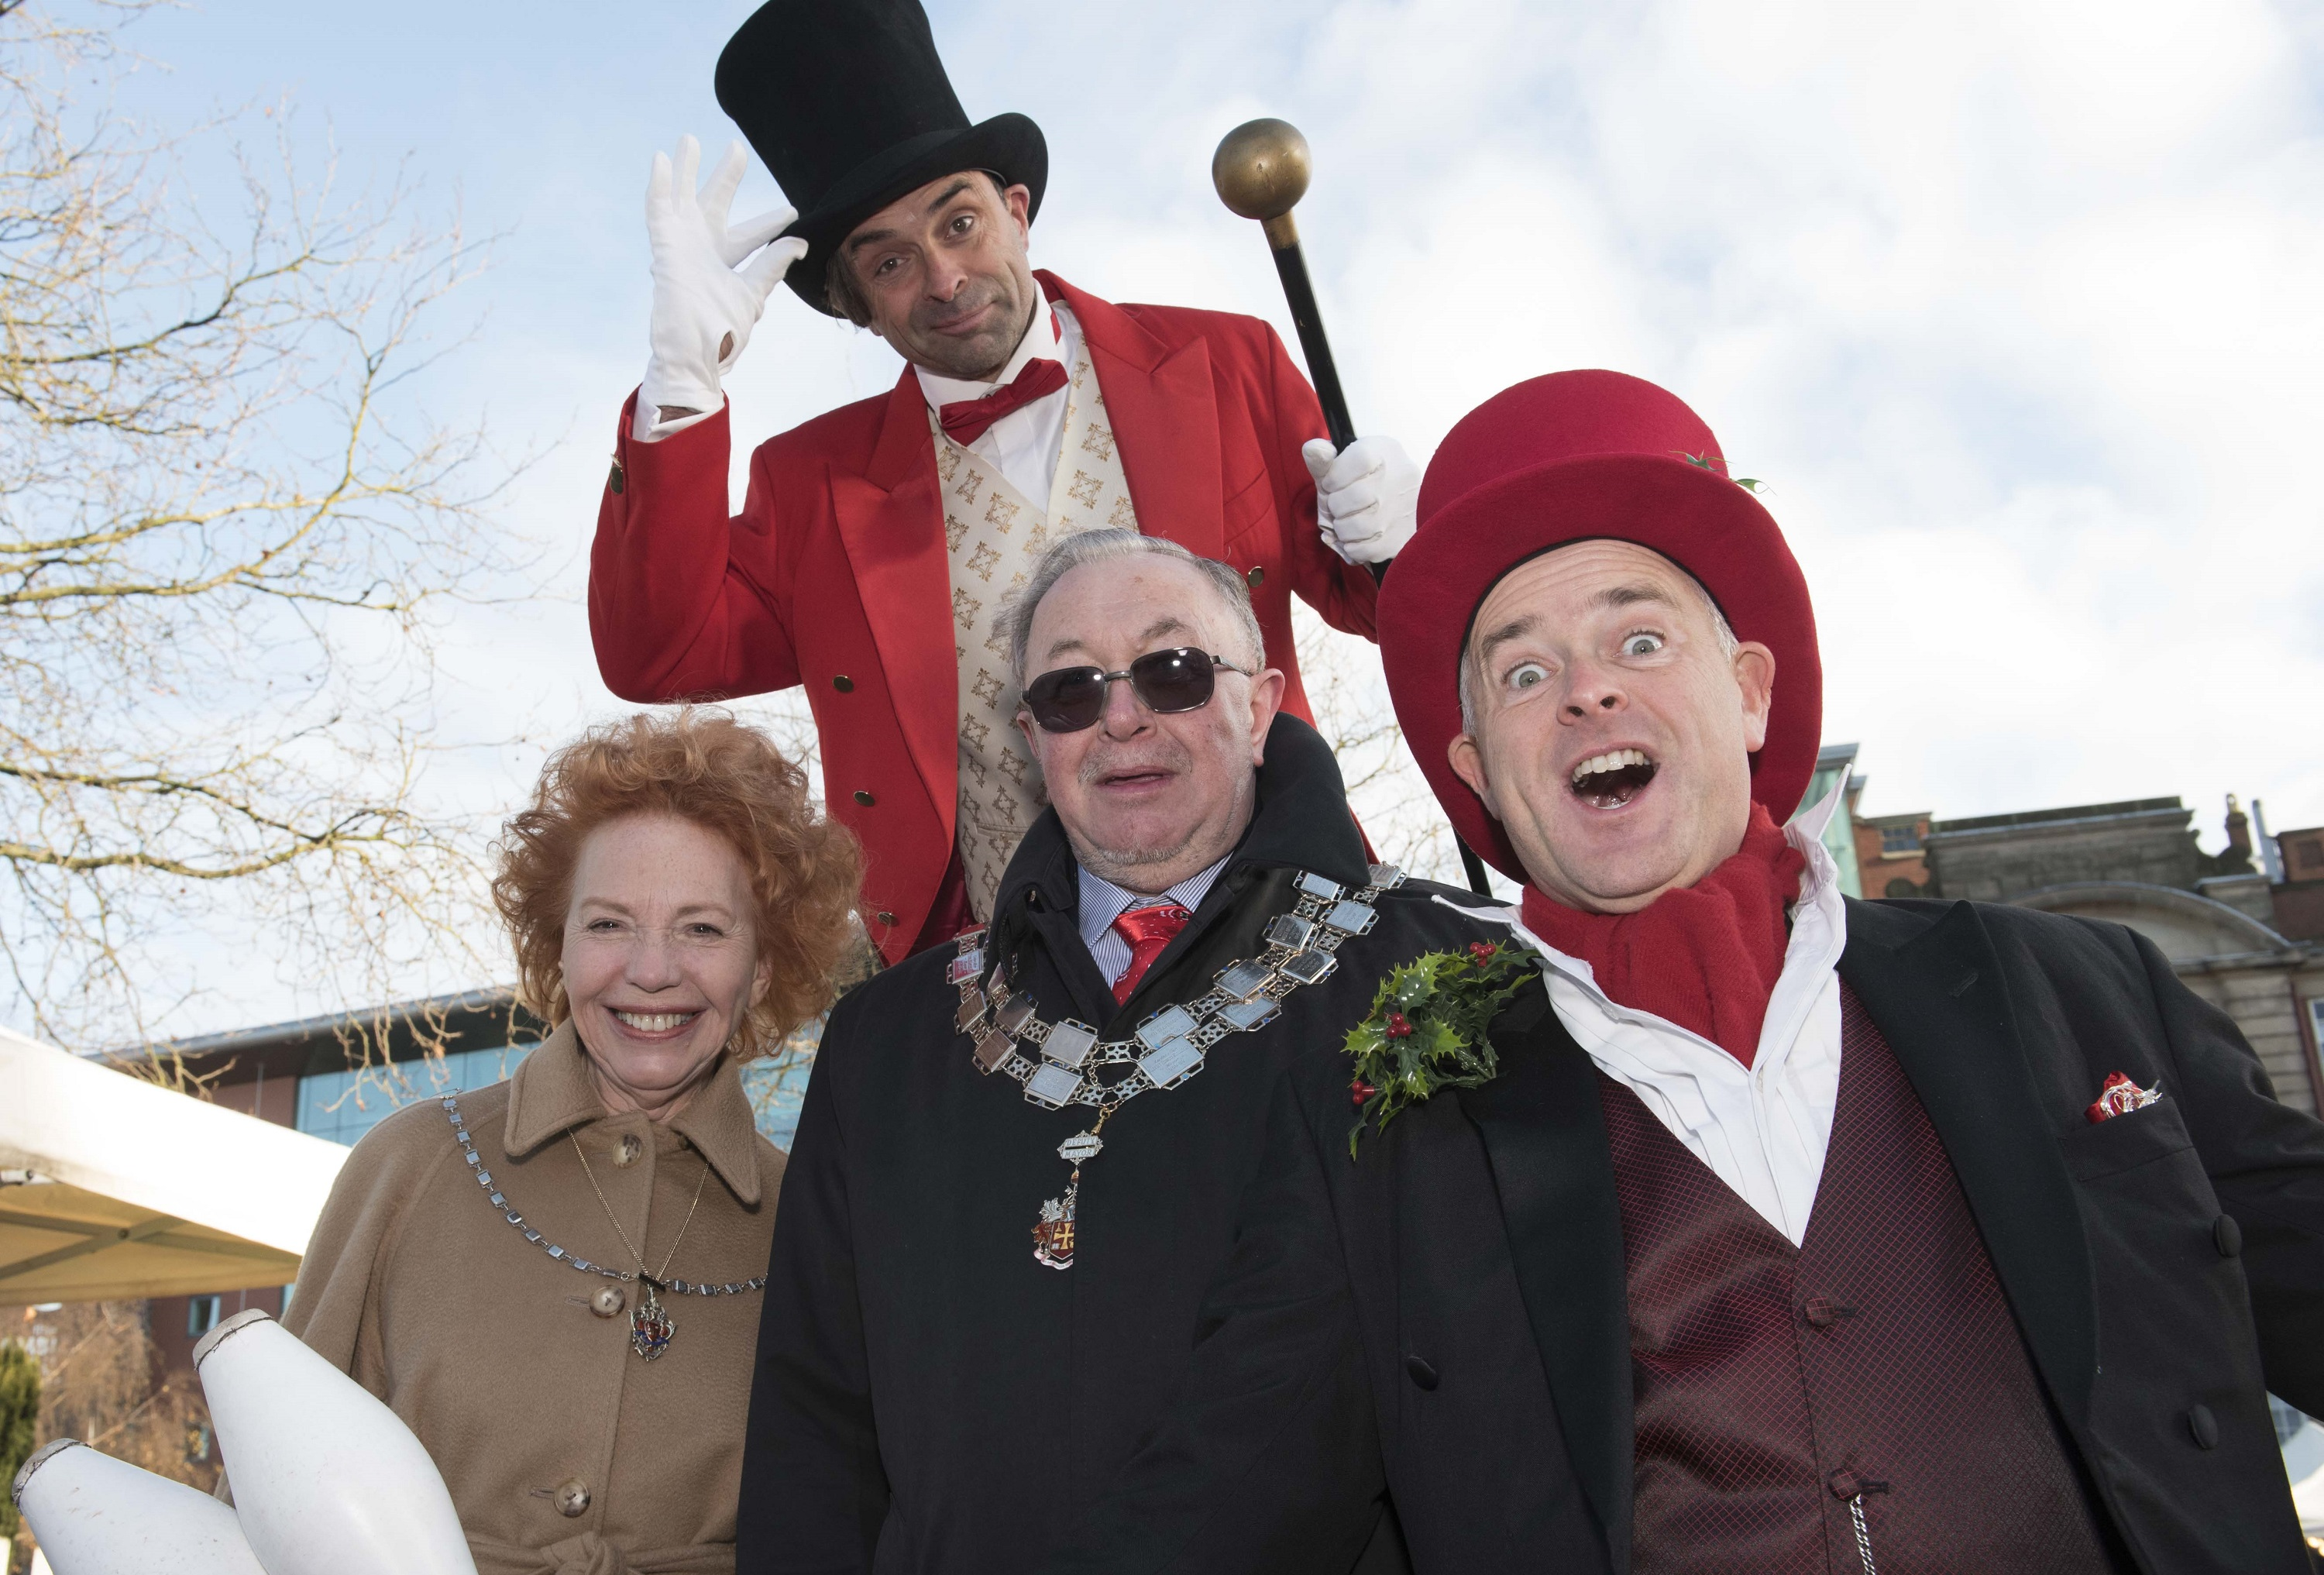 Victorian Christmas Market returns to city next week